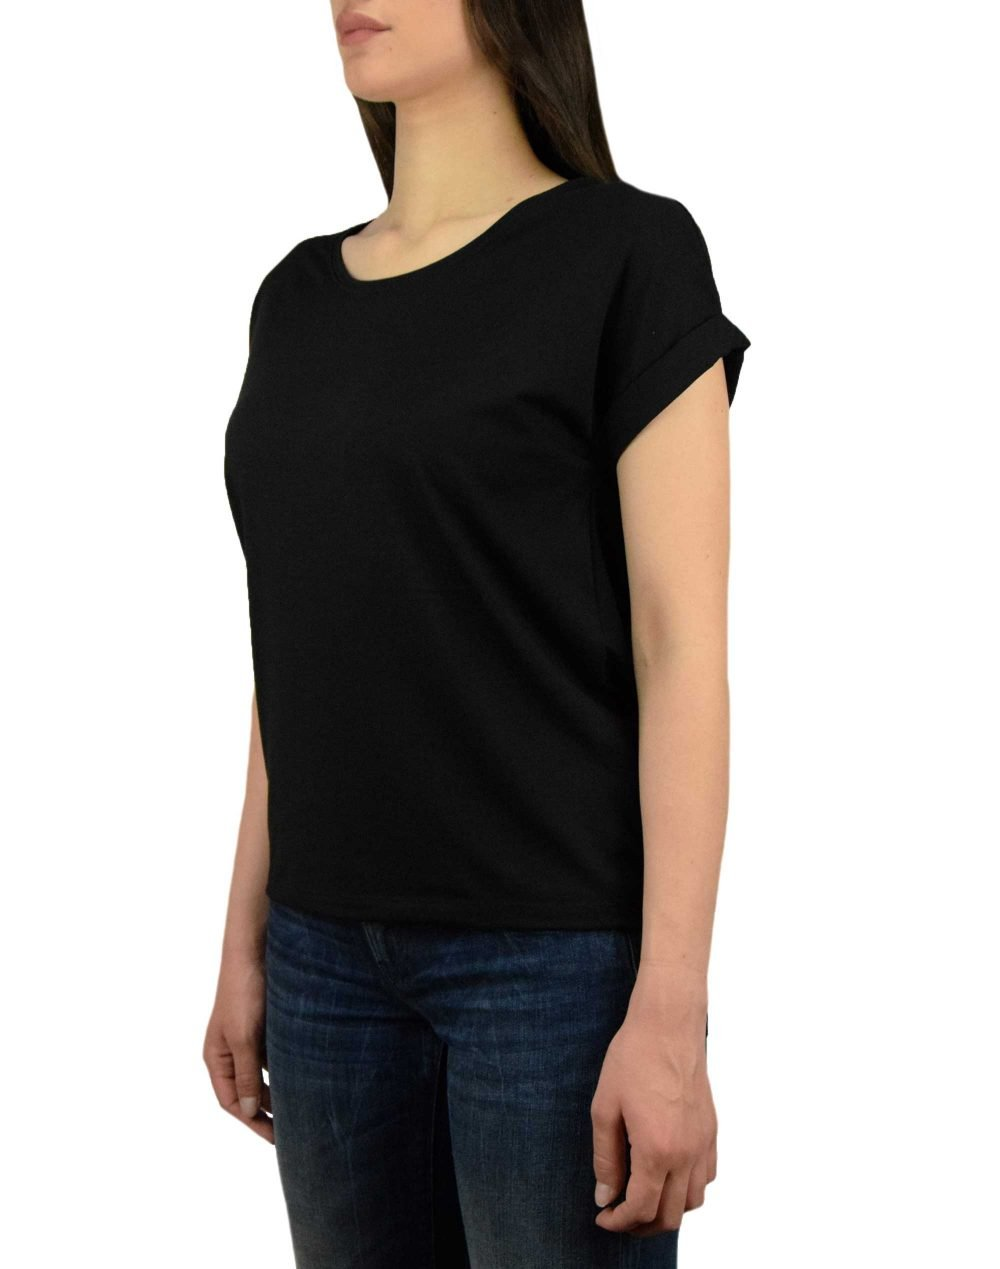 Only Moster Top (15106662) Black / Solid Black